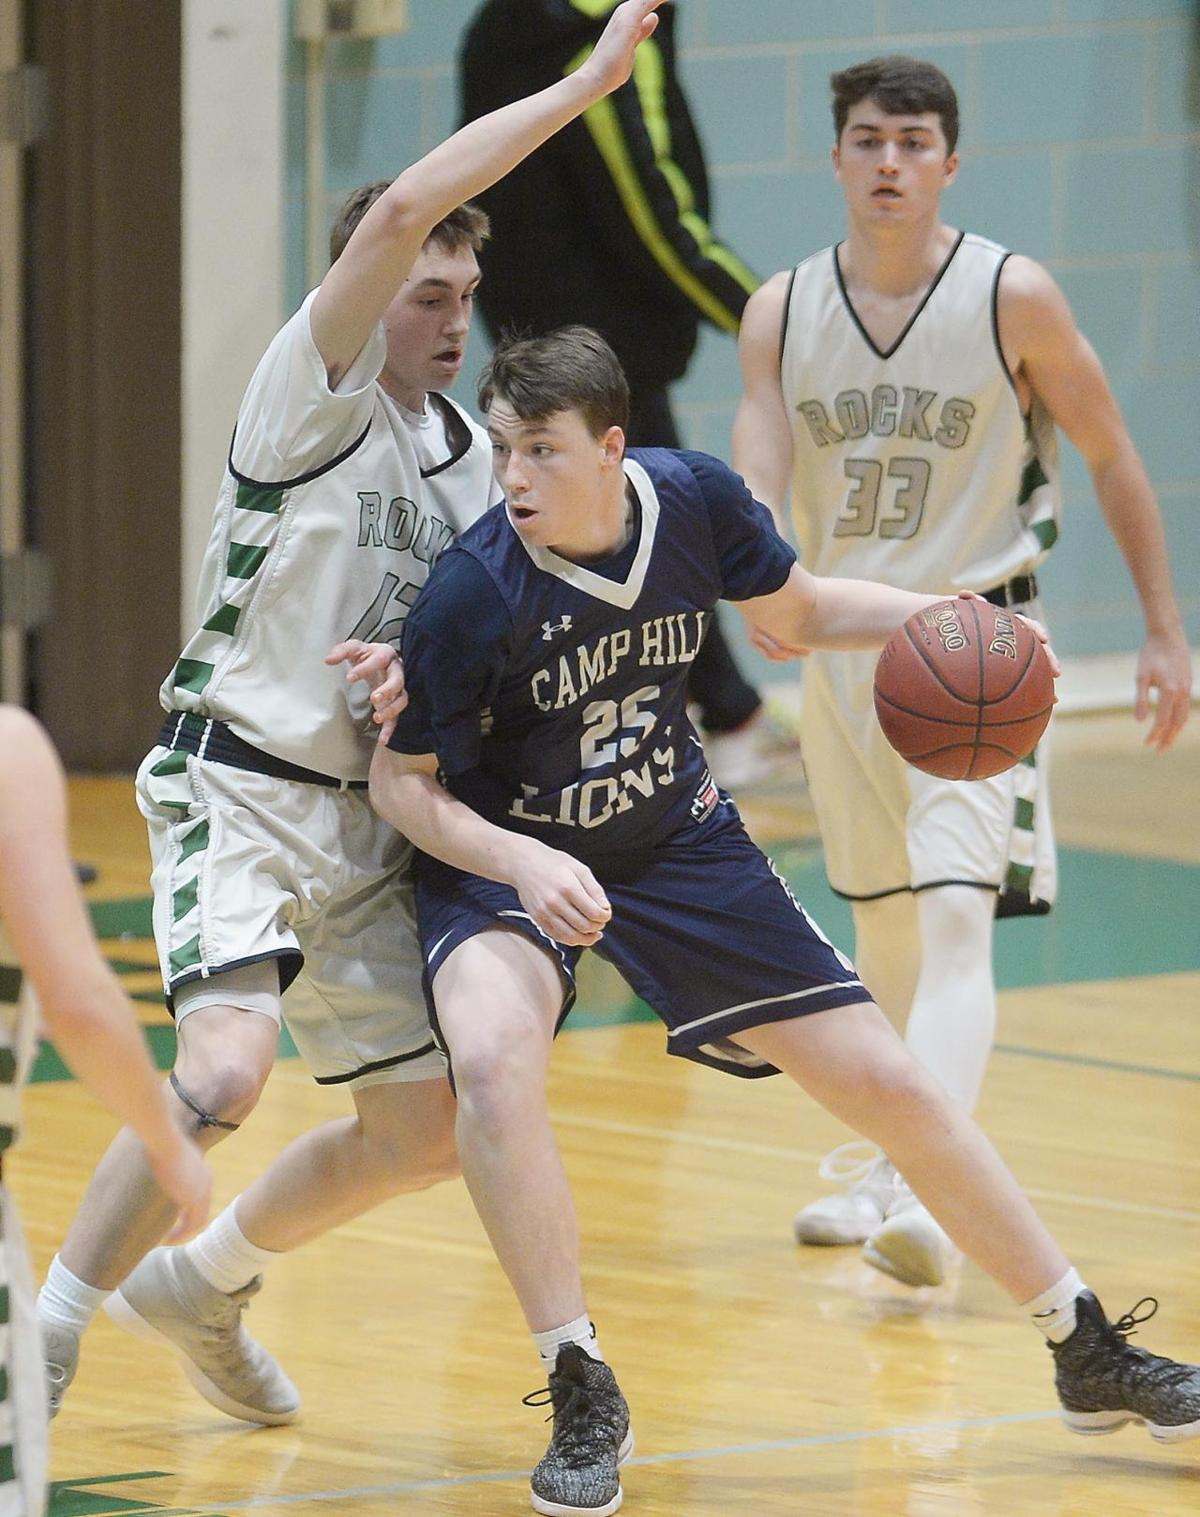 District 3 Boys Basketball: Camp Hill at Trinity